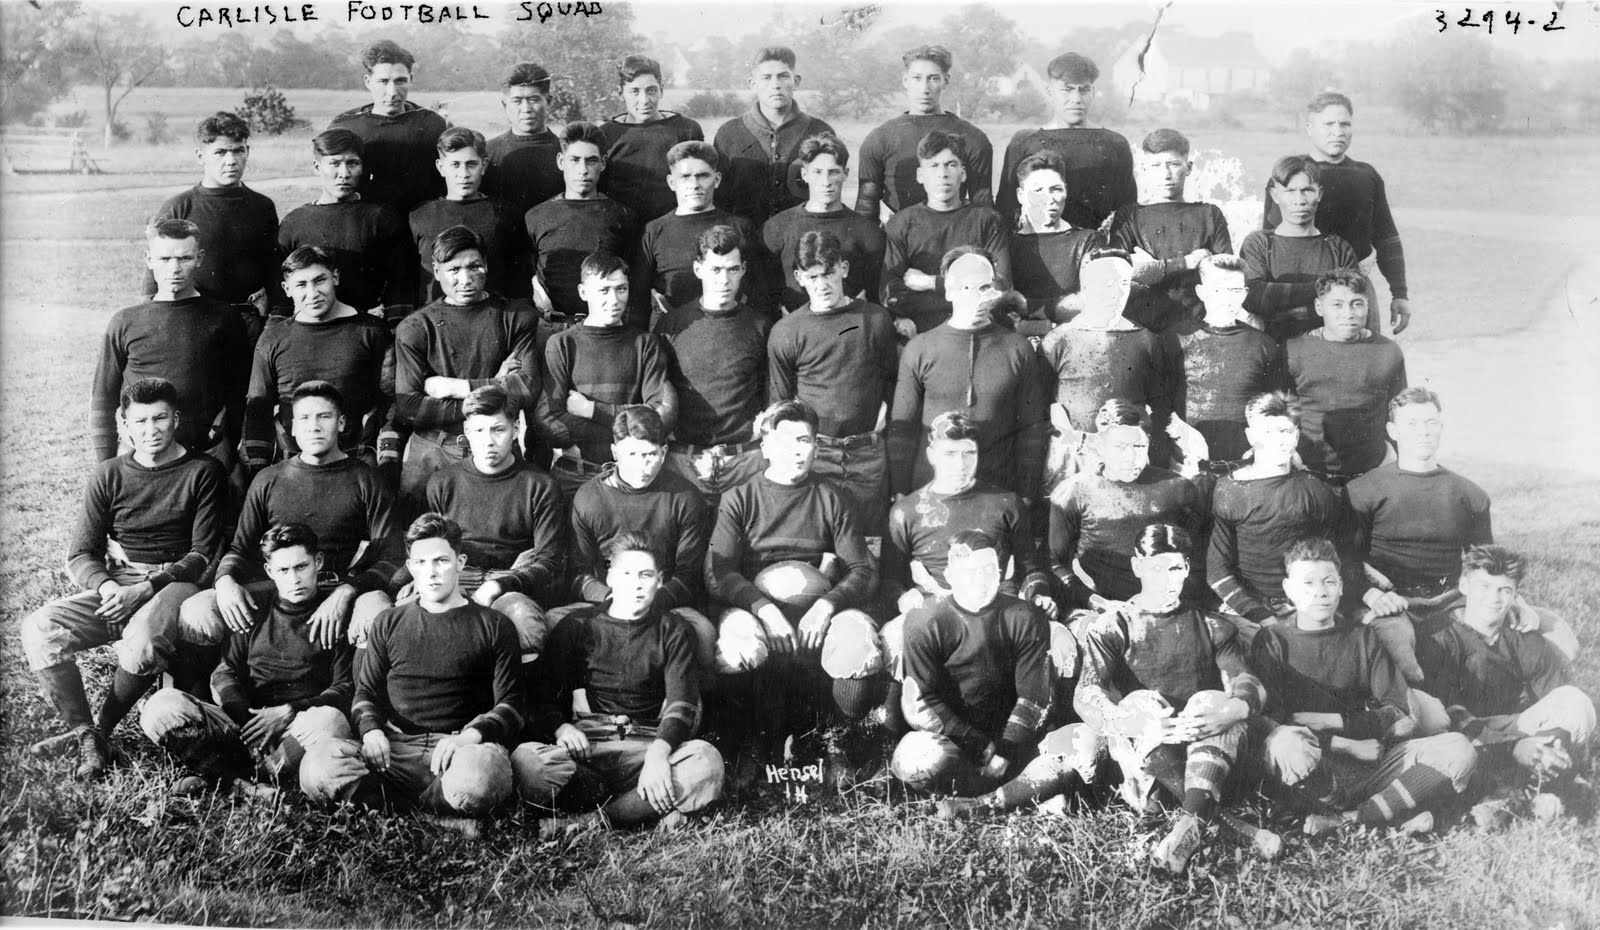 Carlisle football team